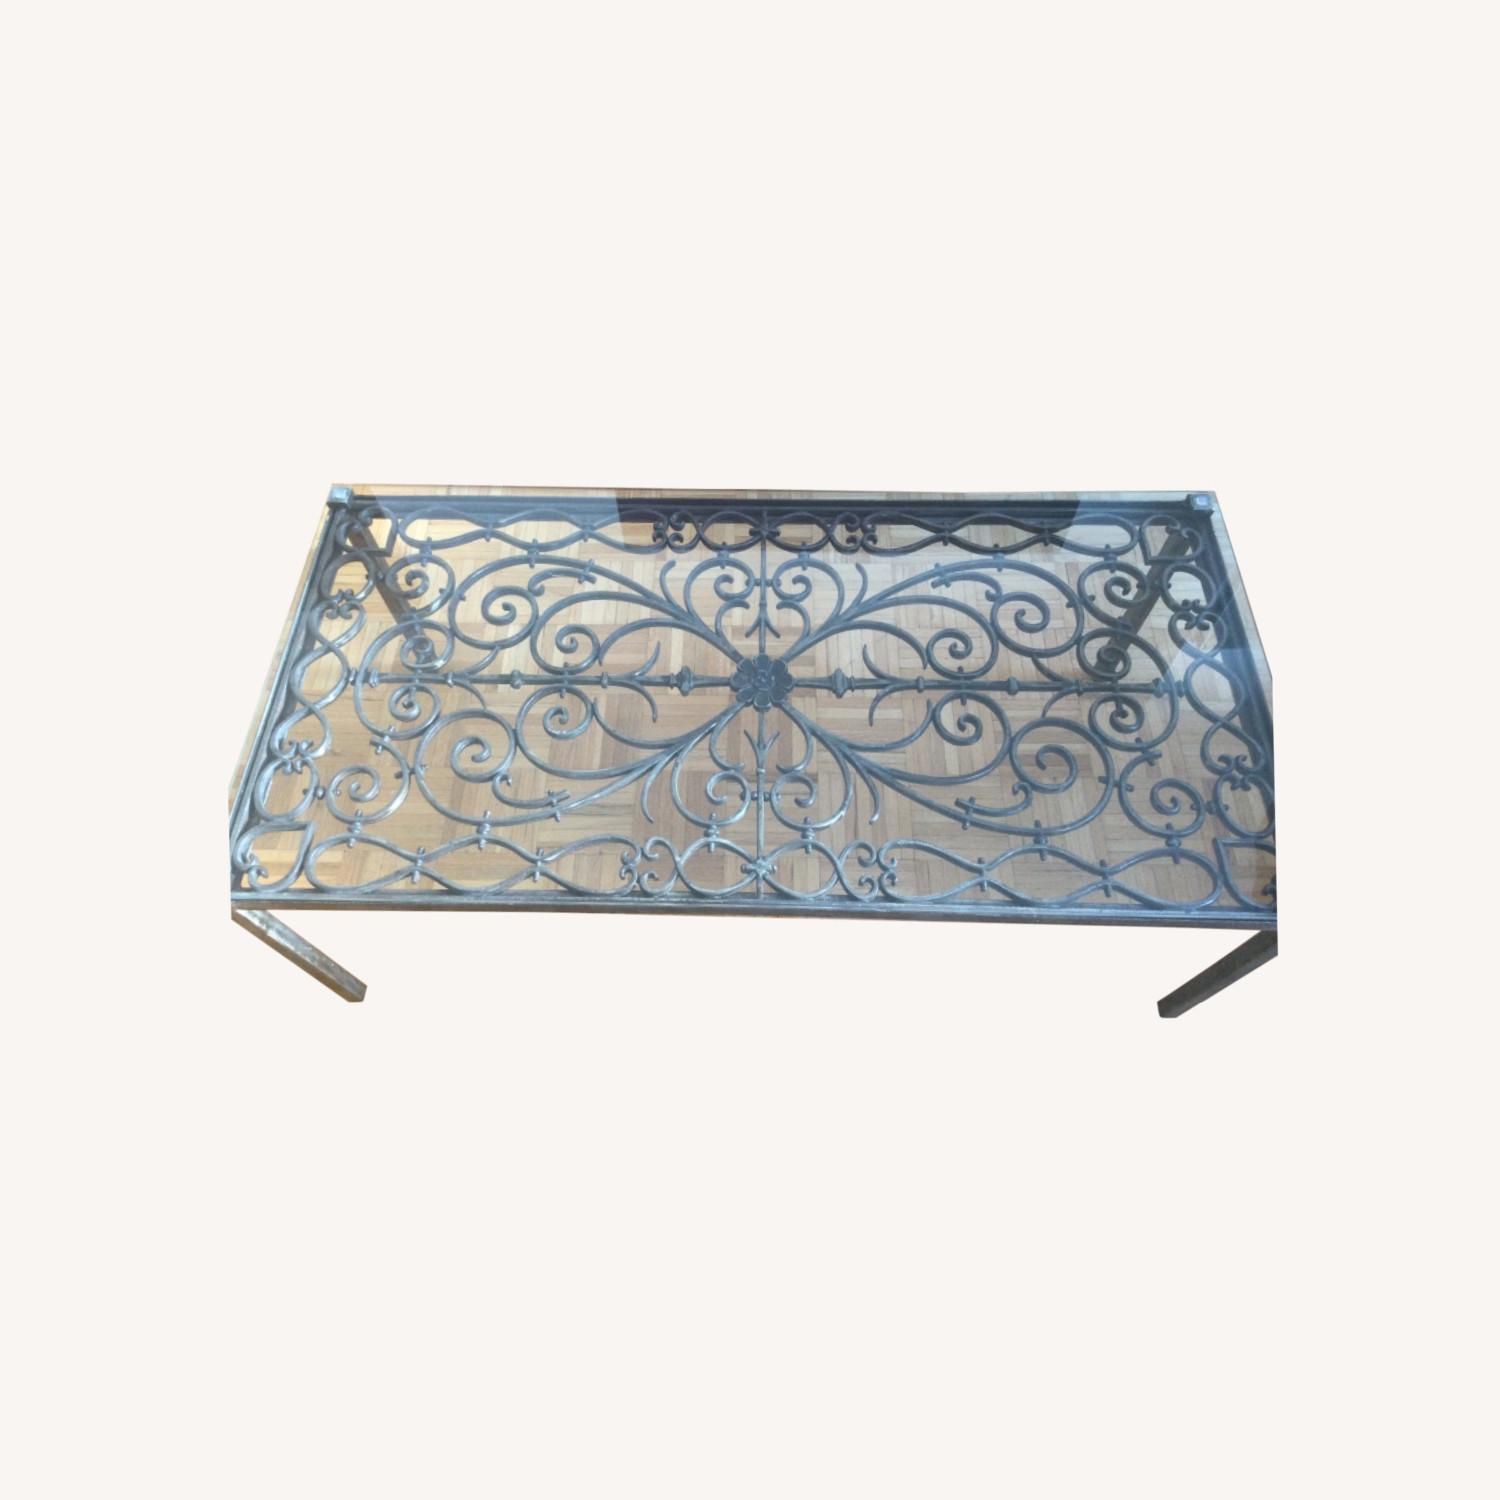 ABC Carpet& Home Scroll Wrought Iron Coffee Table - image-0